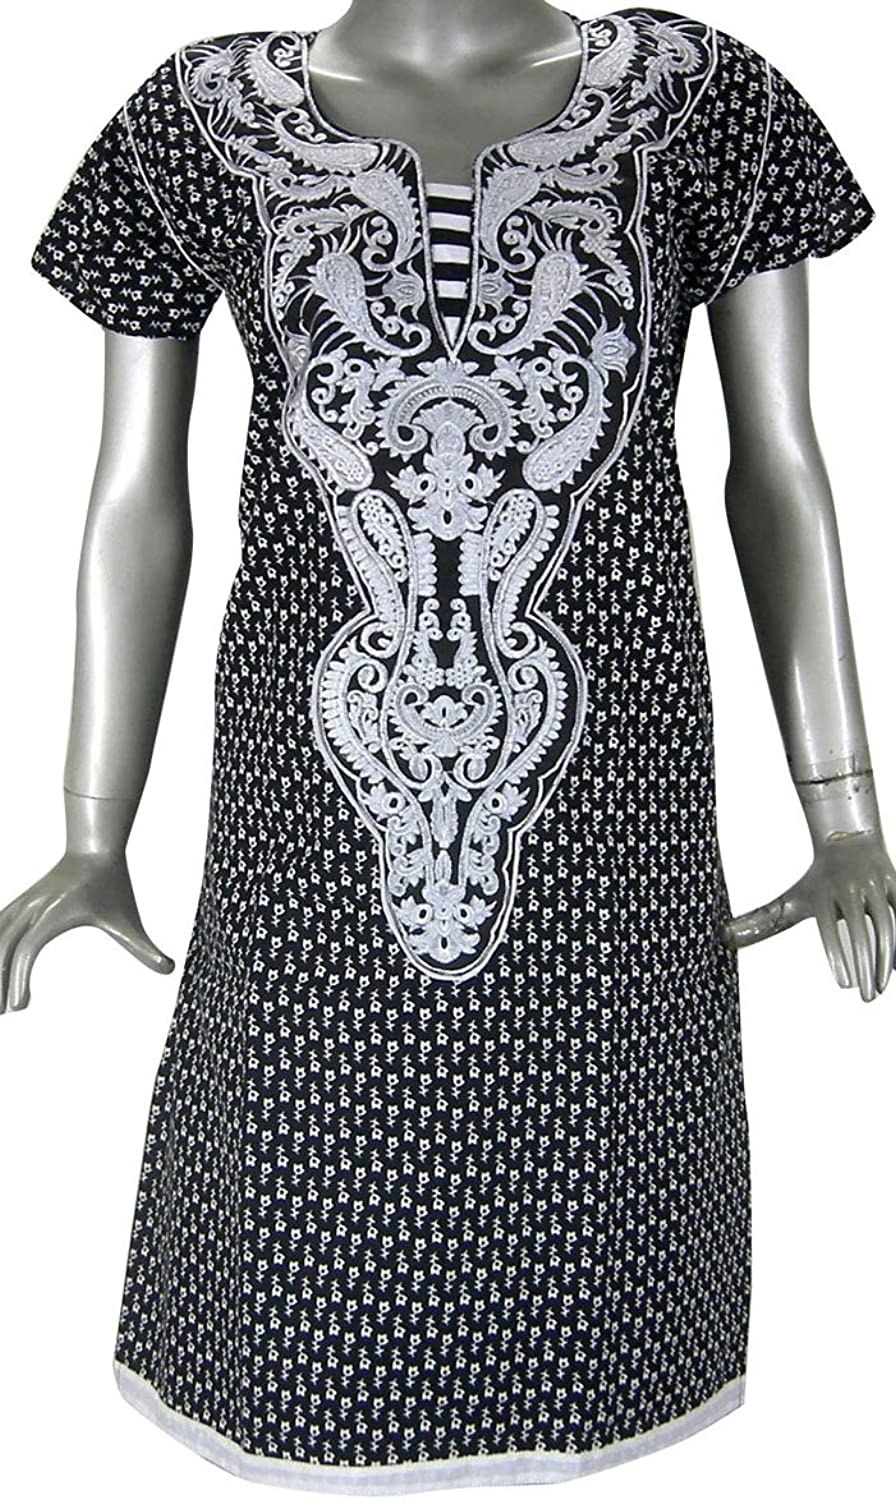 Embroidered Cotton Tunic Top Women India Clothing